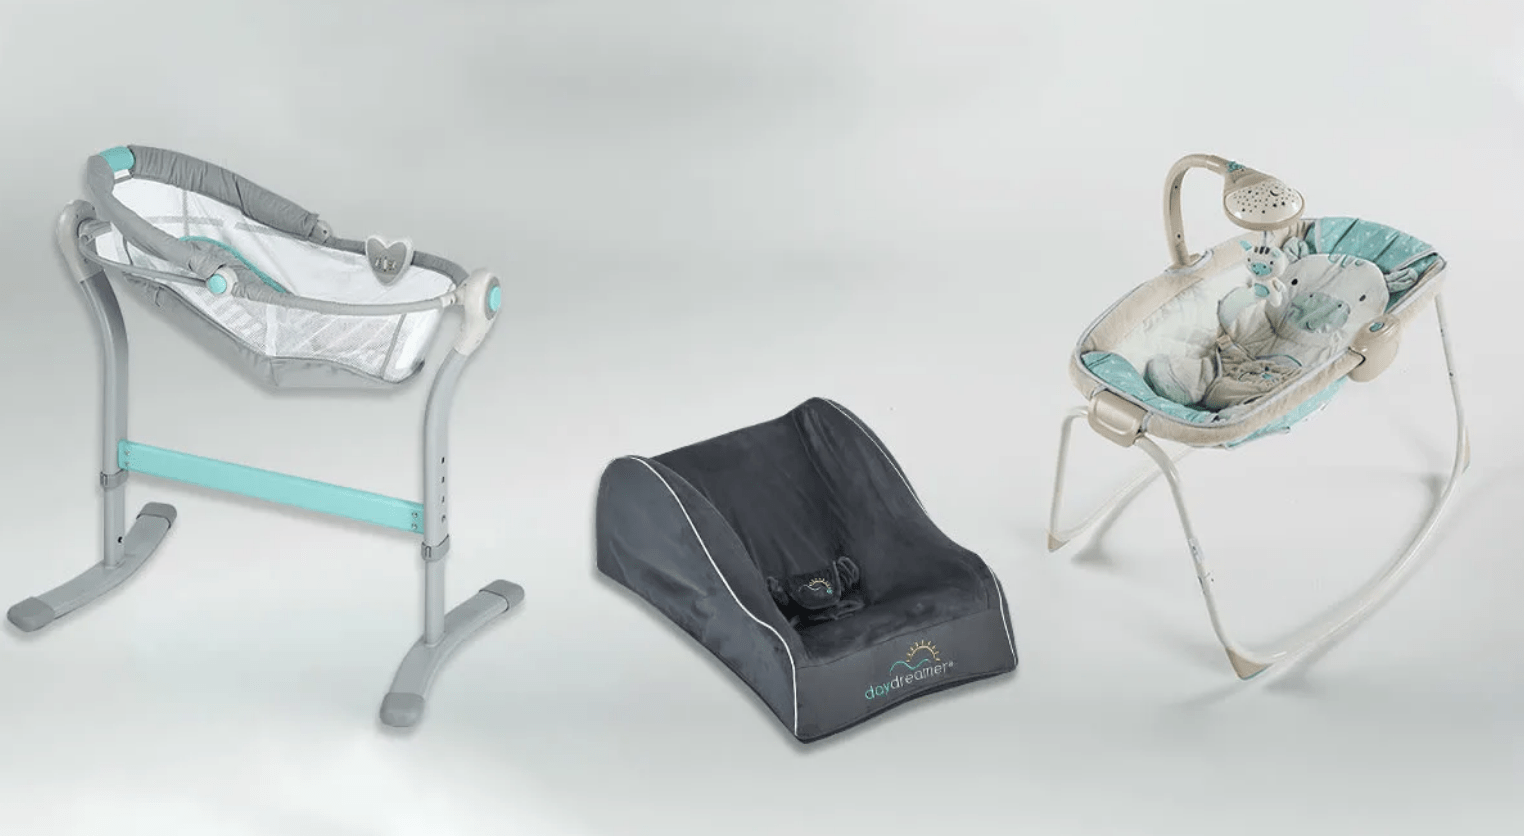 Infant Sleepers Recalled Due to Risk